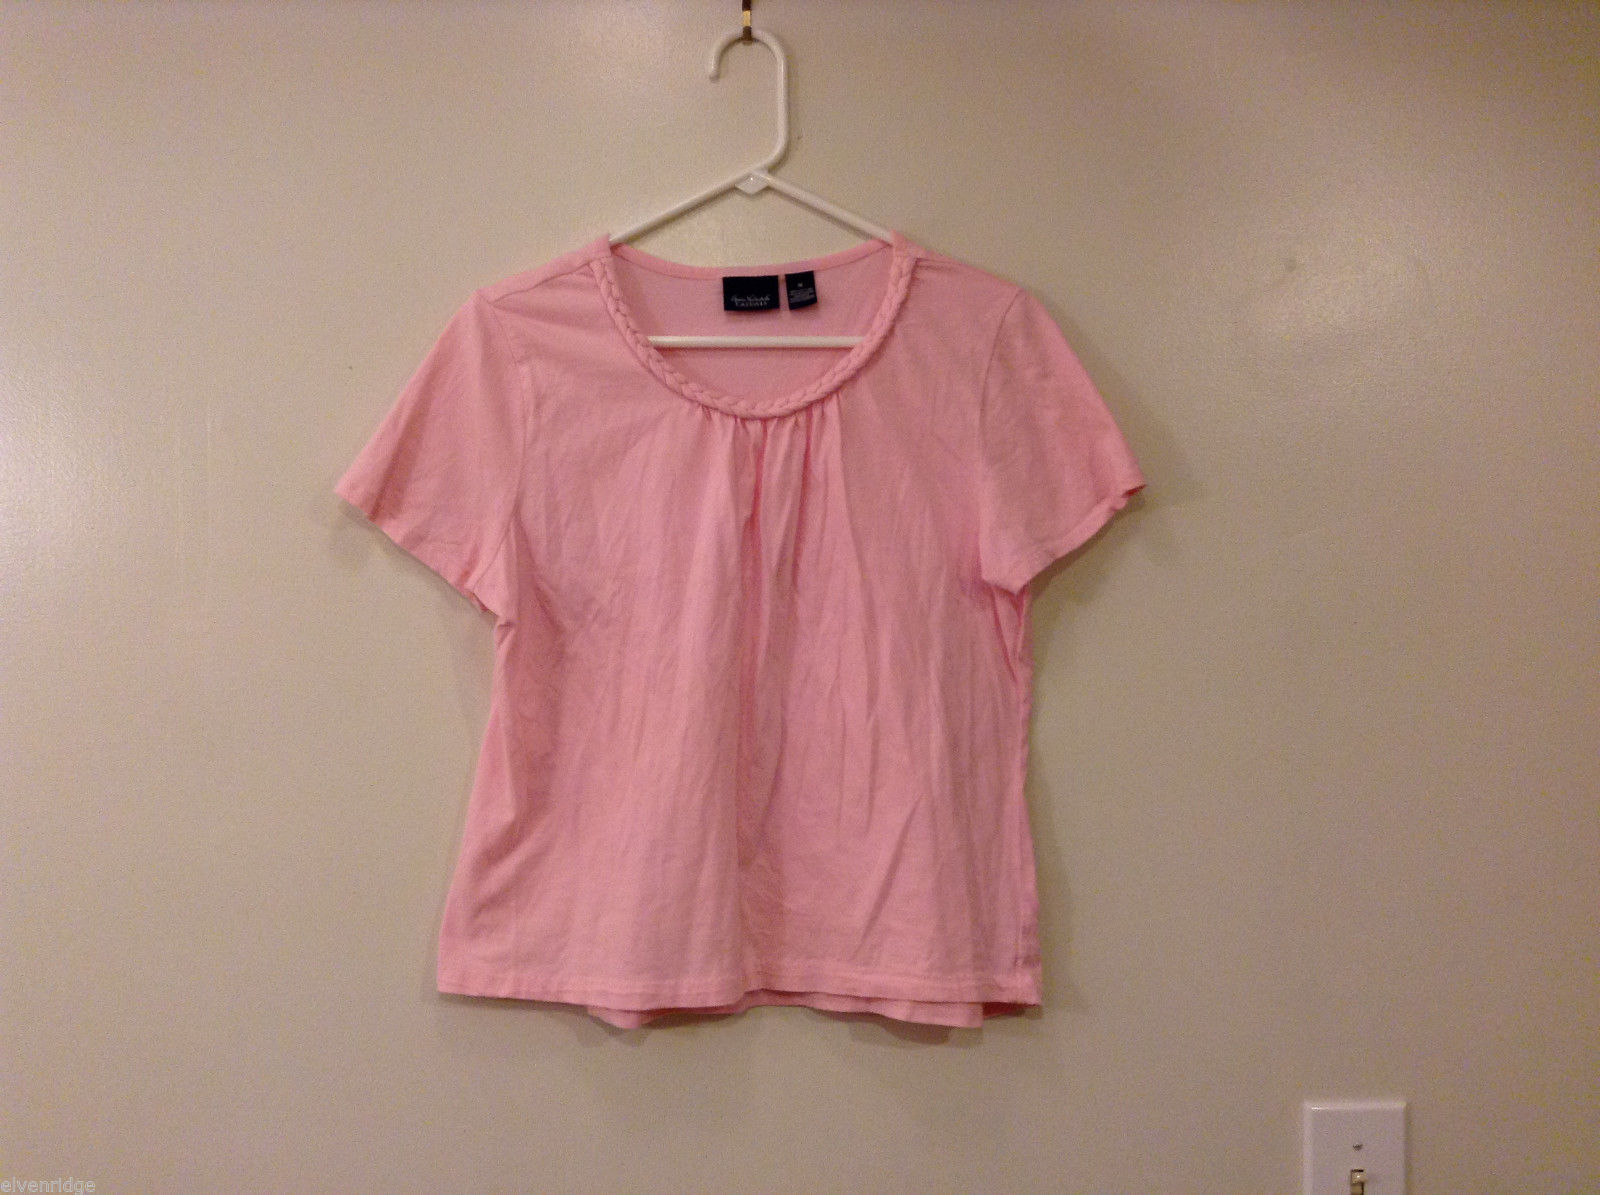 Gloria Vanderbilt Casual Pink 100% Cotton Blouse T-shirt Top, Size M